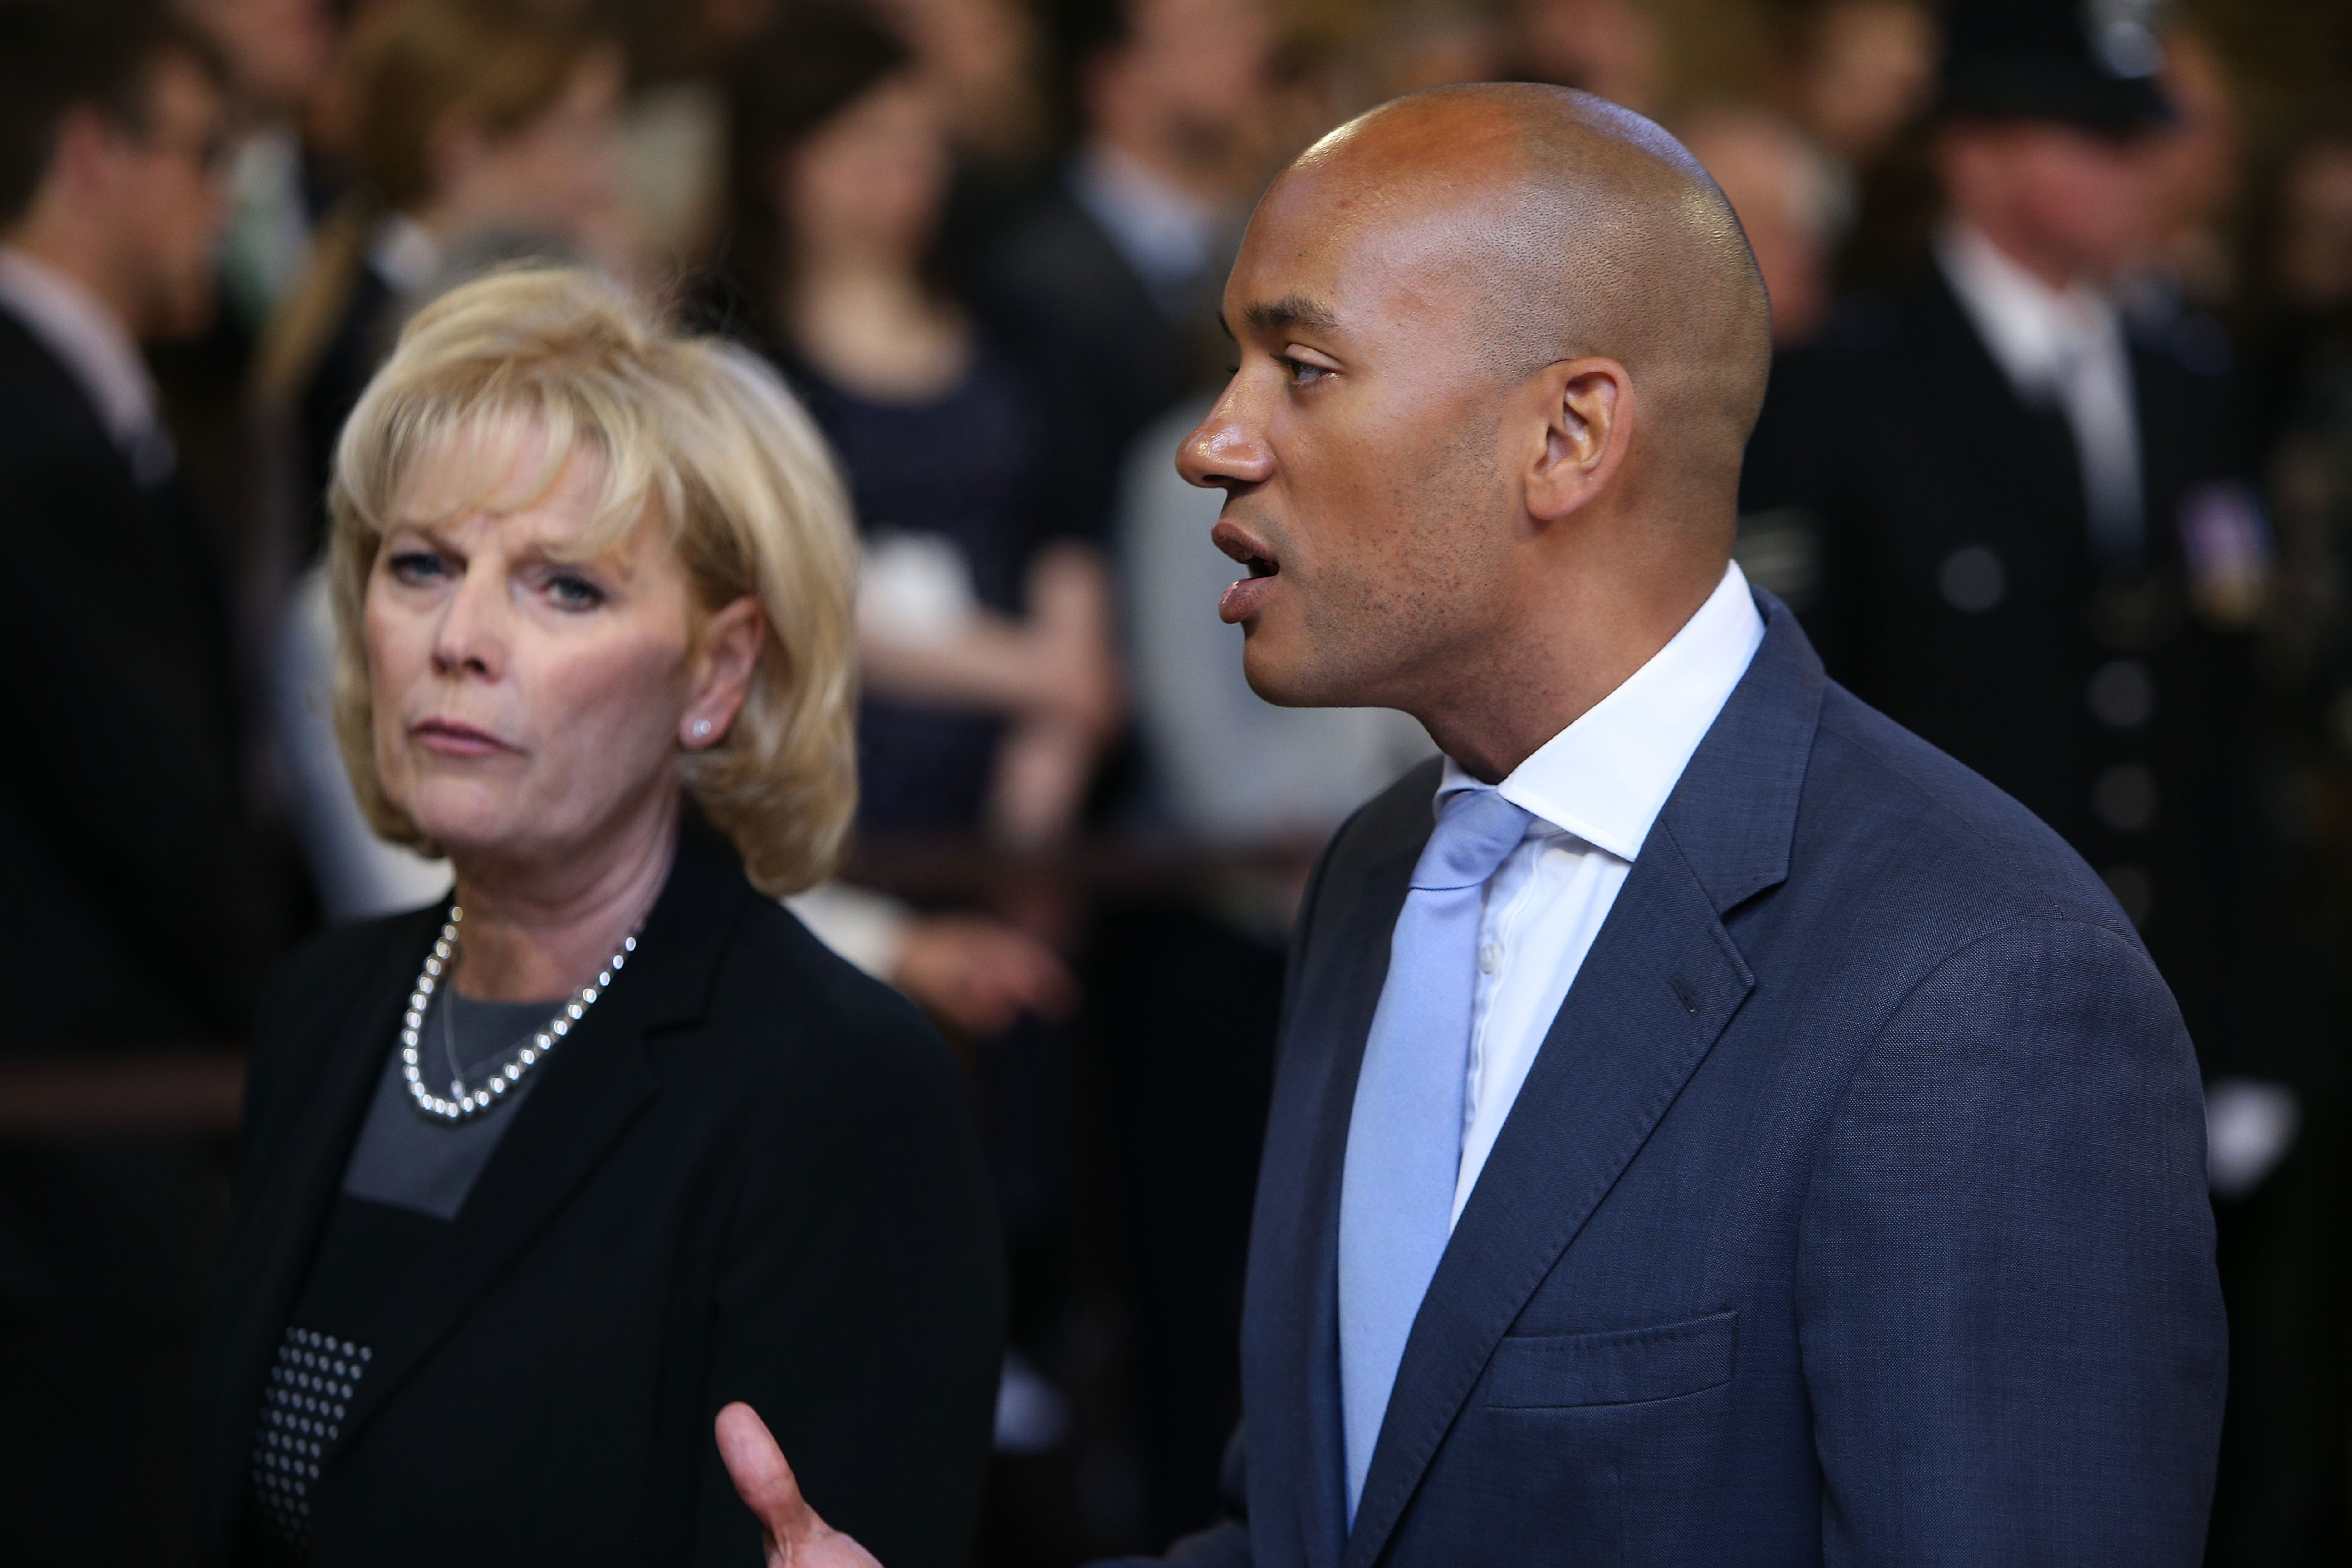 LONDON, ENGLAND - MAY 27: Shadow Business Secretary Chuka Umunna processes though the central lobby during the State Opening of Parliament at the Houses of Parliament on May 27, 2015 in London, England. The Queen's Speech is the centrepiece of the State Opening and is expected to see promise of an EU referendum, tax cuts and an extension of Right to Buy in the in the first all-Conservative Queen's Speech since 1996. (Photo by Dan Kitwood/Getty Images)